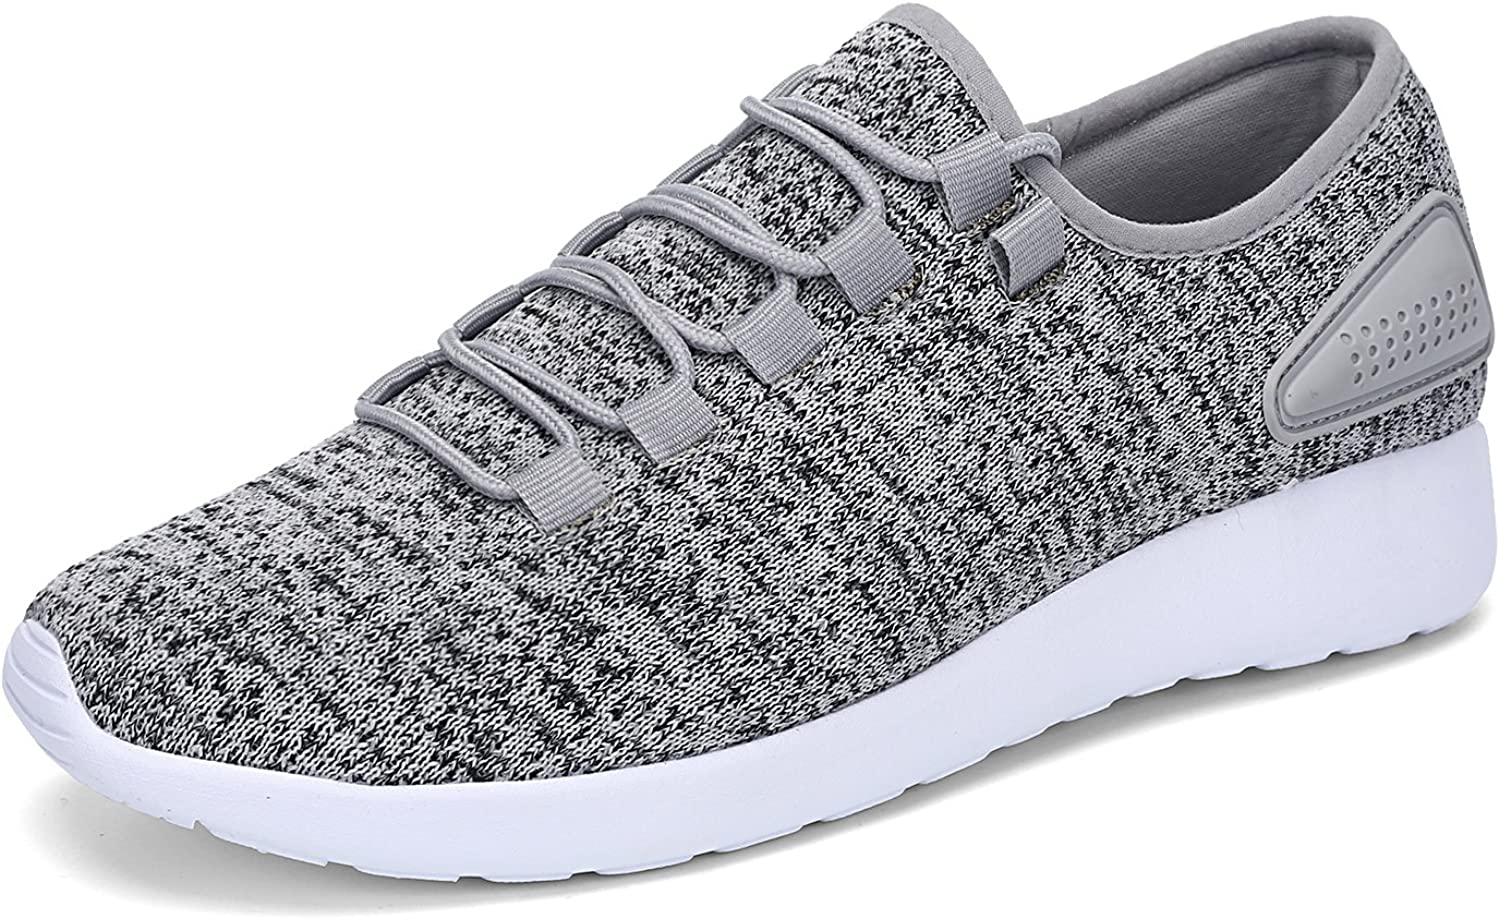 LEADERICA Men's Running shoes Fashion Sneakers Slip-On Knit Sport shoes